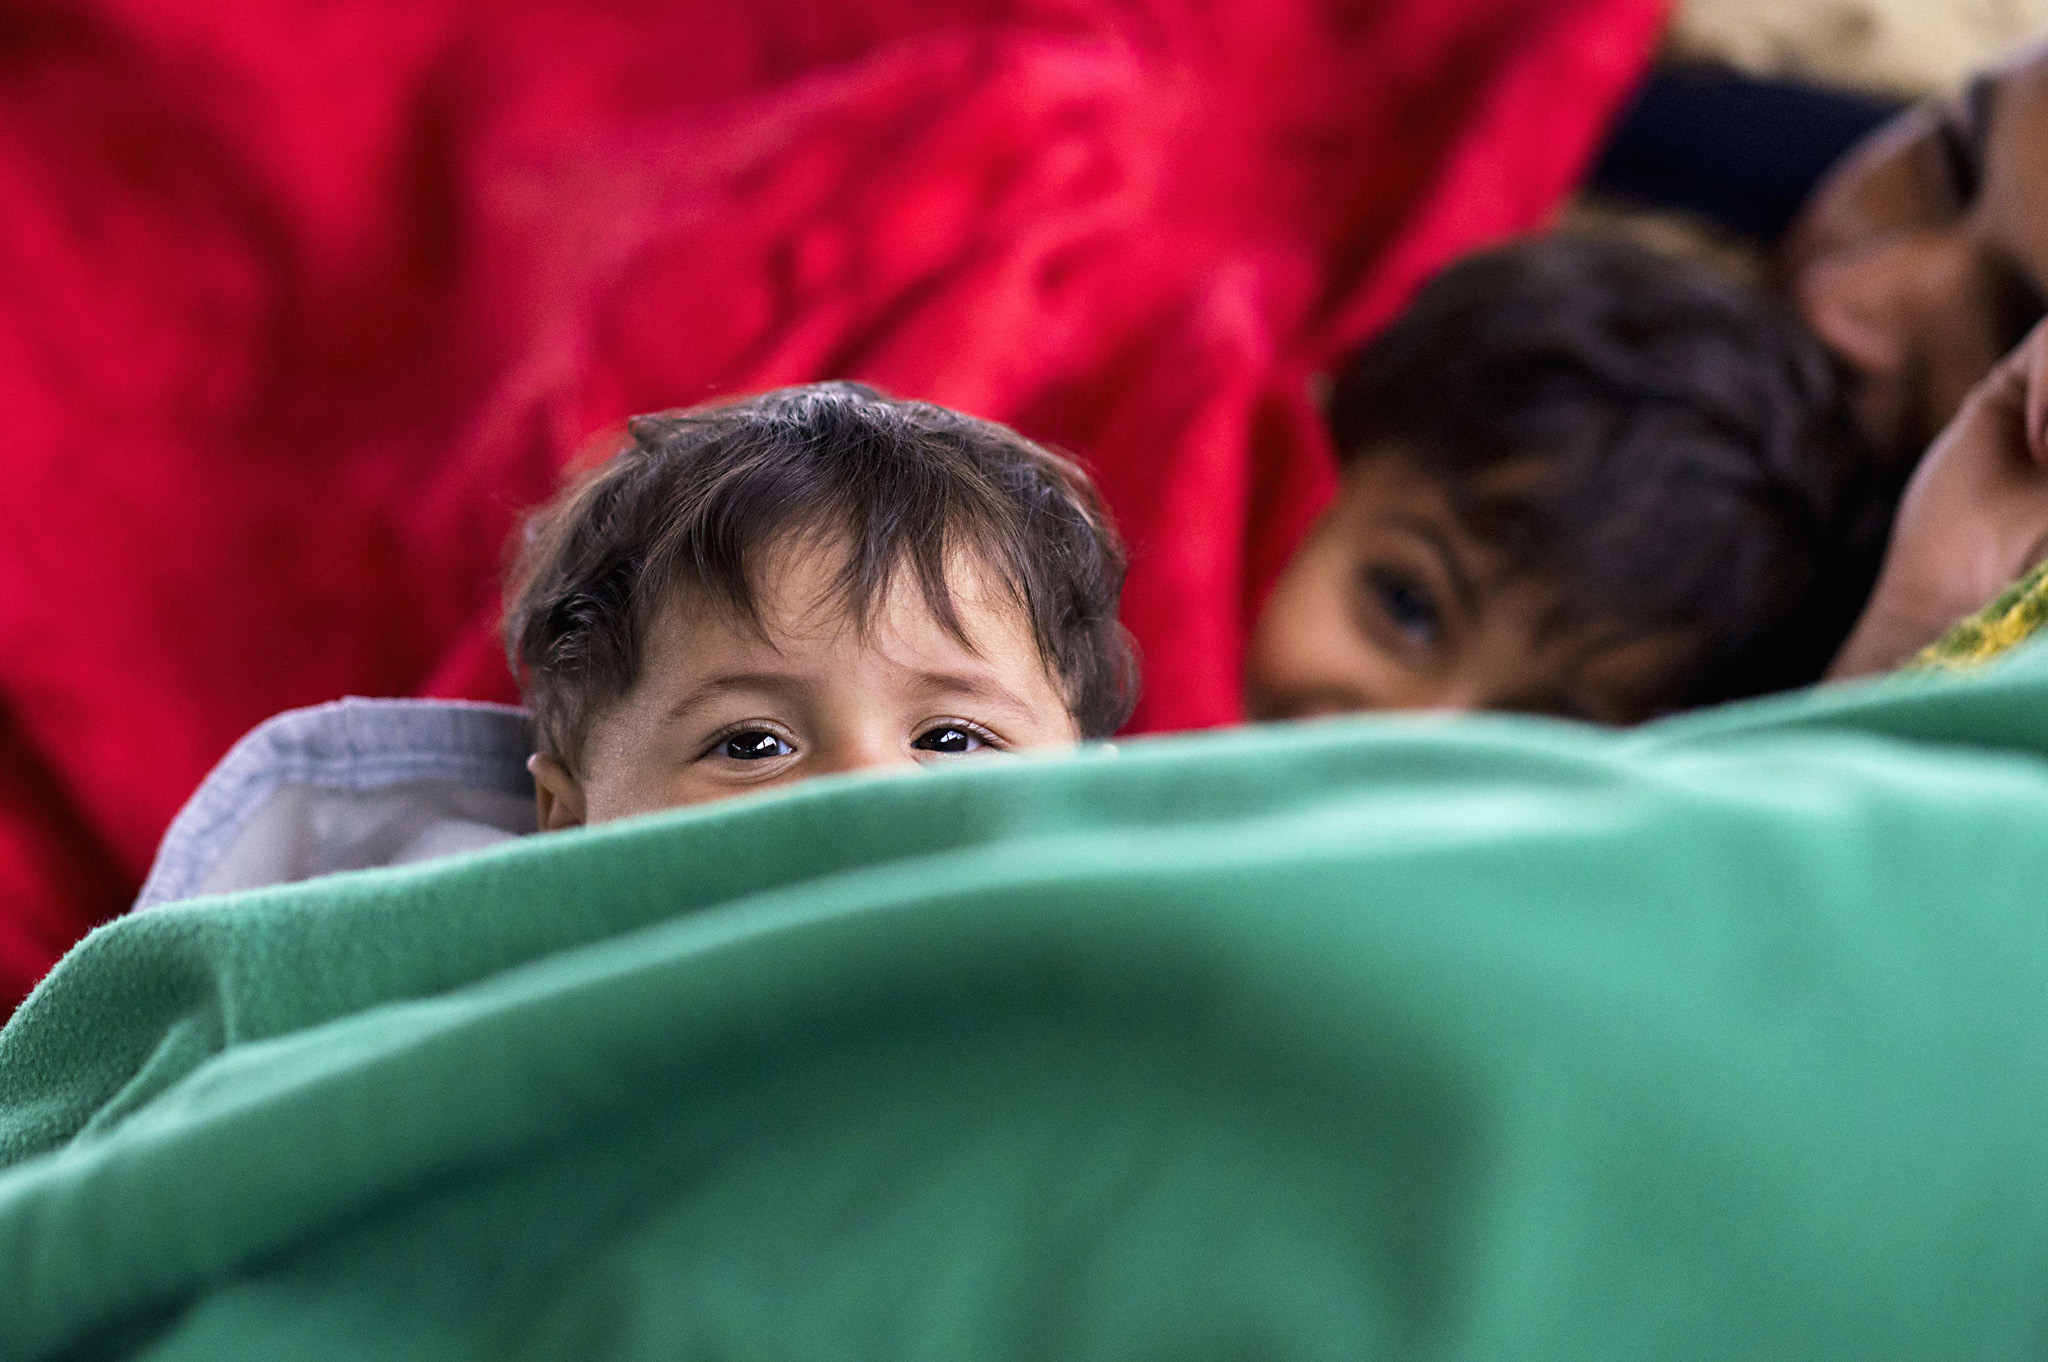 Migrant families rest at the former truc...Migrant families rest at the former truck custom station on the Austrian side of the border between Hungary and Austria on September 11, 2015 near Nickelsdorf, Austria. Over eight thousand migrants passed through this location the day before and the same number is expected for today. AFP PHOTO/JOE KLAMARJOE KLAMAR/AFP/Getty Images